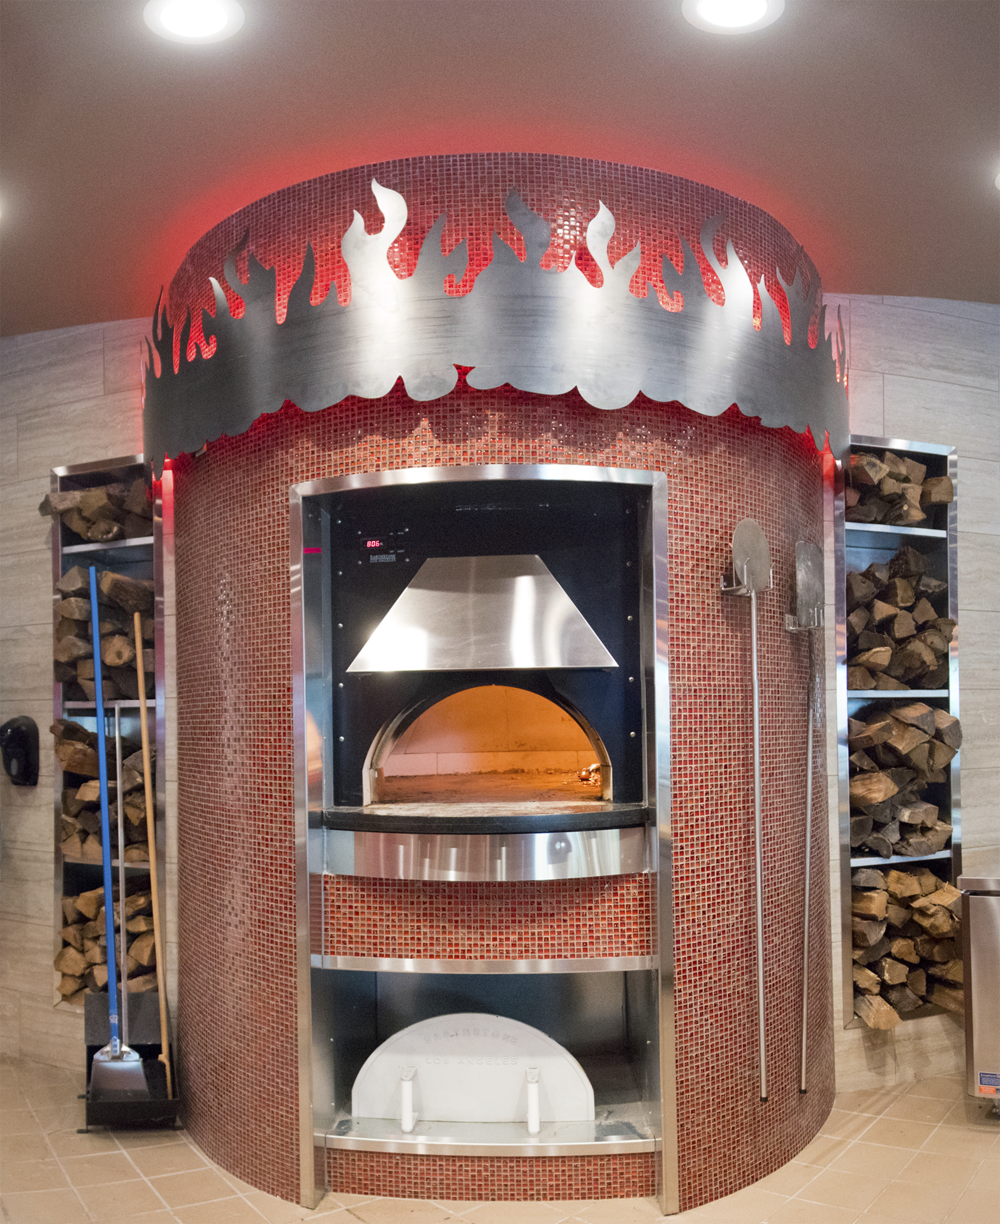 The hottest wood-fired pizza franchise that everyone is talking about - We're franchising our fantastic wood-fired pizza restaurant under a new name, Smokin' Oak Wood-Fired Pizza.  It's everything you love about Pi, just with a new name. Get in touch today at franchise@smokinoakpizza.com or call us, 800-656-0779, Ext. 1.